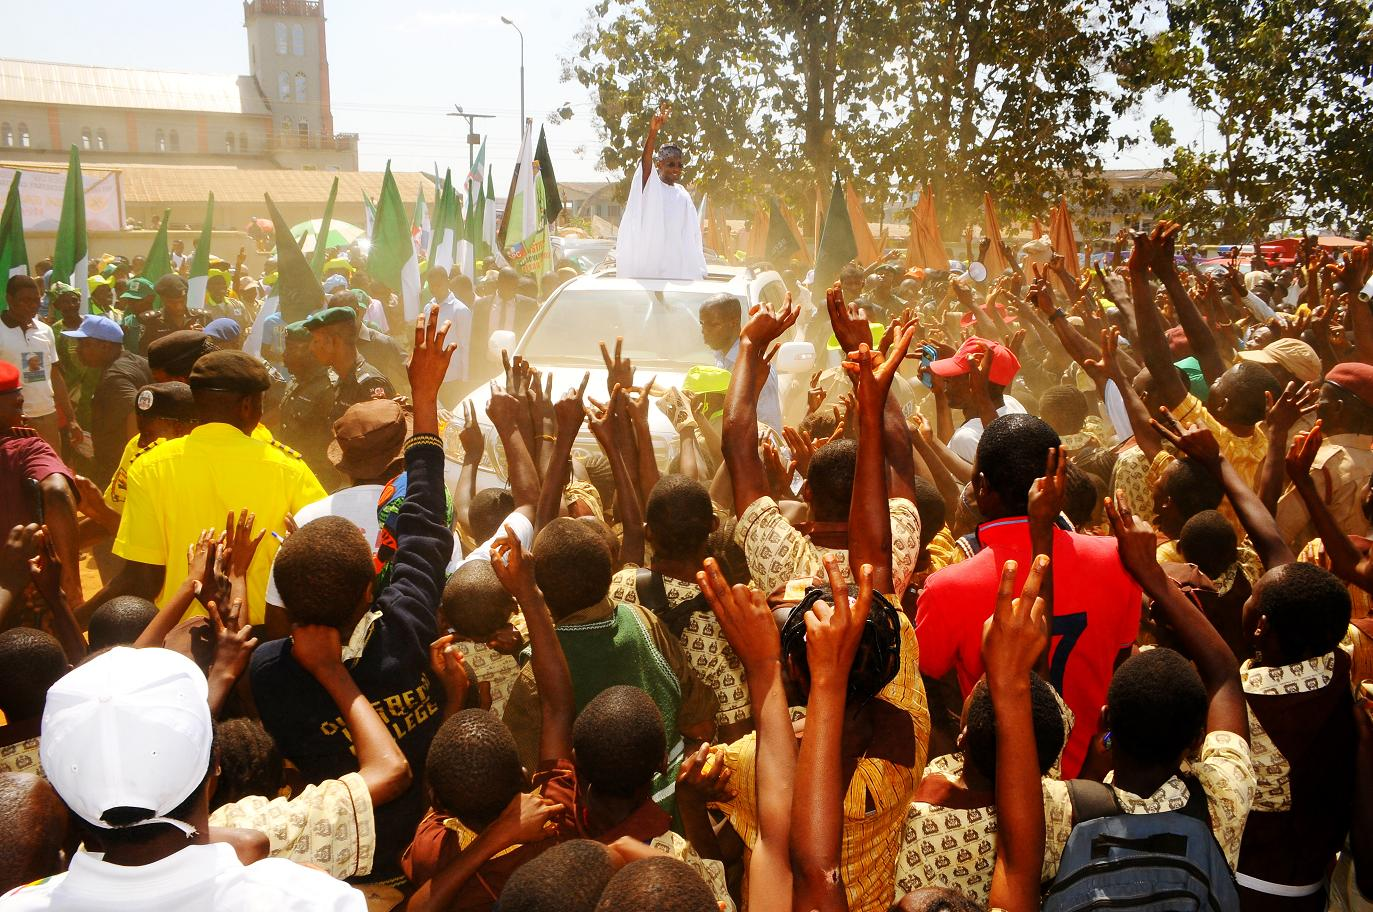 """Governor State of Osun, Ogbeni Rauf Aregbesola acknowledging cheers from  Ijesha people while rejoicing with prayer of supports for his Second Term in office  immediately after the 6th edition of an interactive programme tagged, """"Gban-gba Dekun"""" in Ijesha South Federal Constituency consisting of Ilesa West, Ilesa East, Atakumosa East and Atakumosa West Local Governments at Ilesa High School, Ilesa, State of Osun last week"""